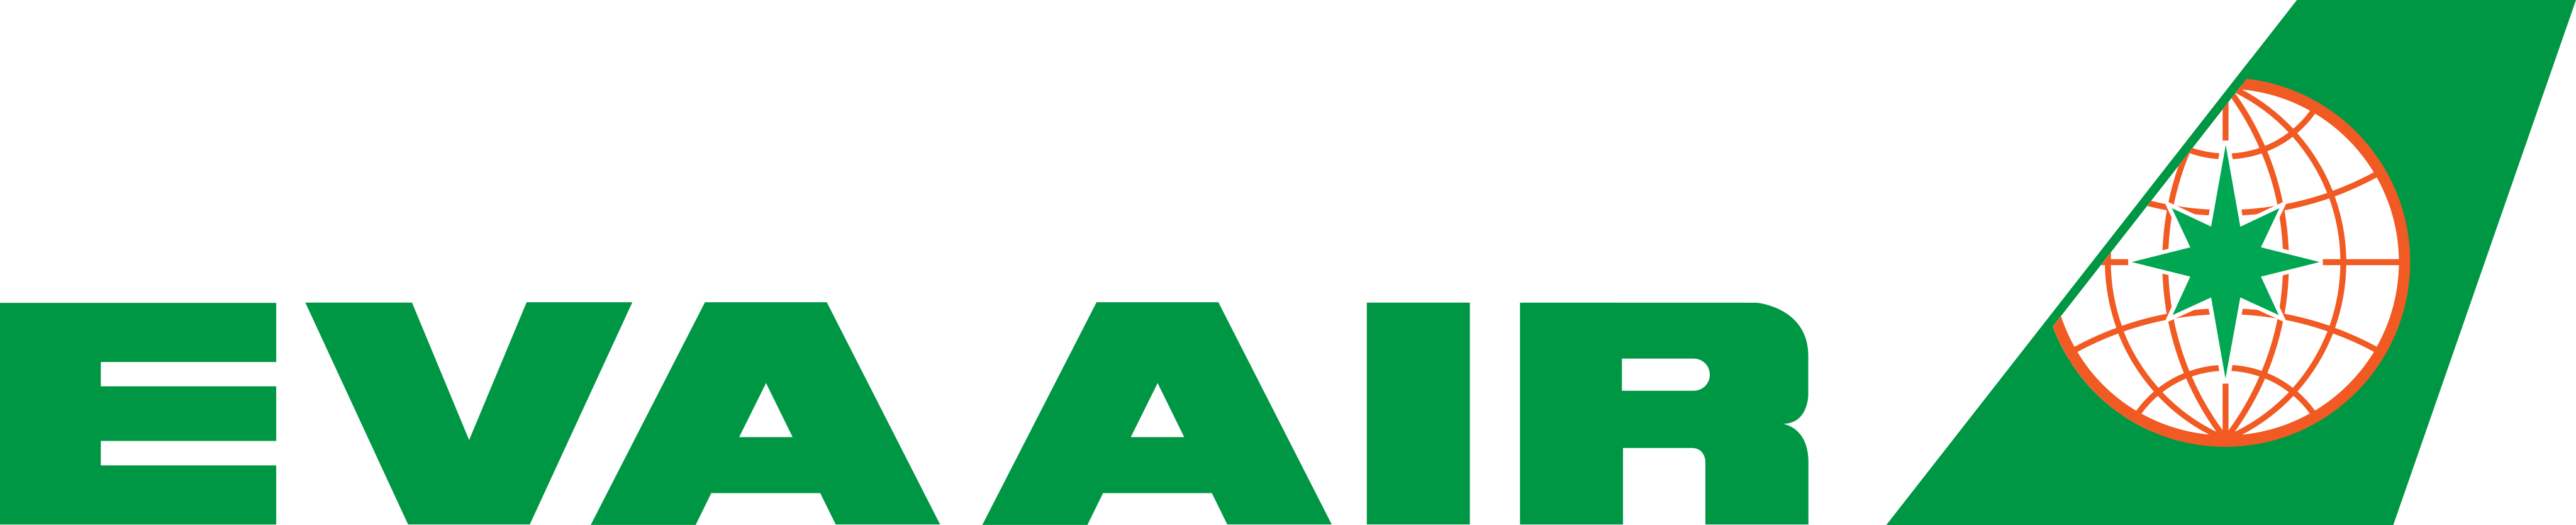 eva air logo - EVA Air Logo